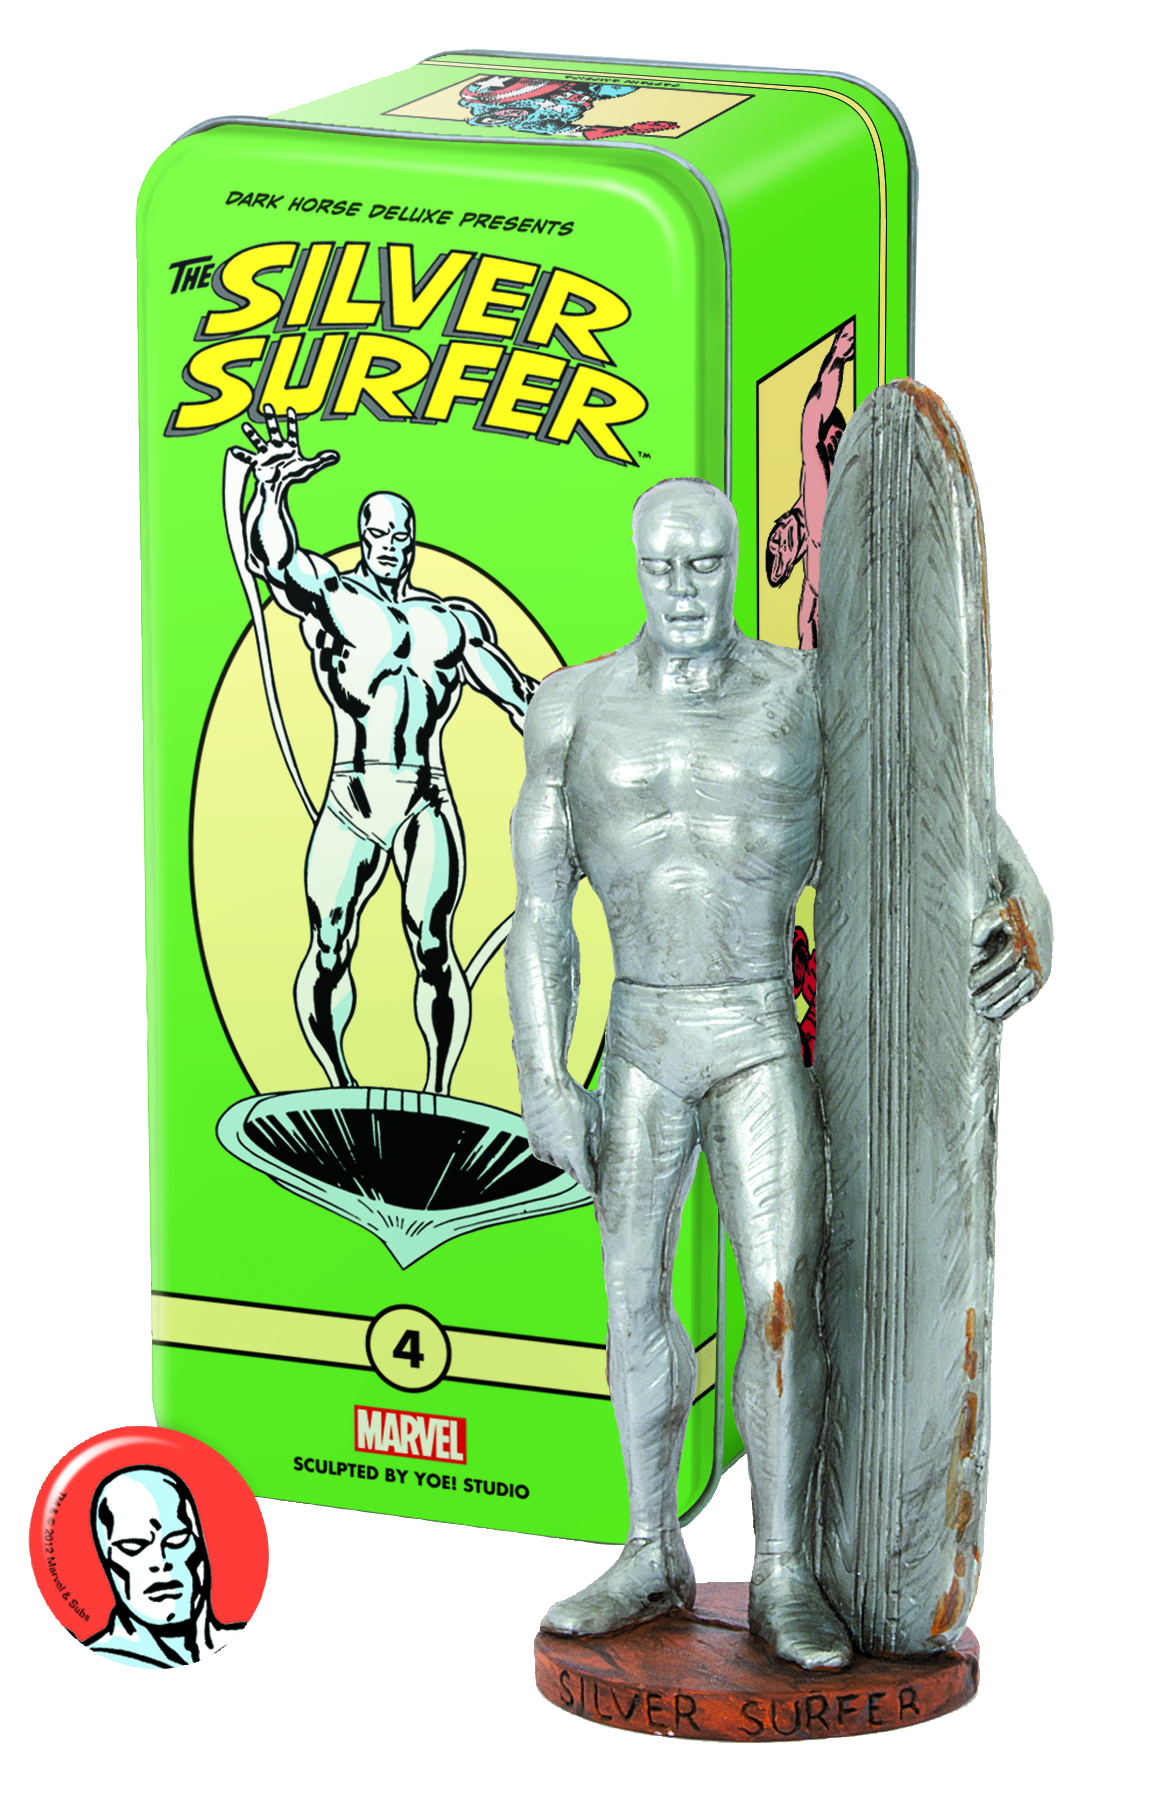 CLASSIC MARVEL CHARACTERS SERIES 2 #4 SILVER SURFER